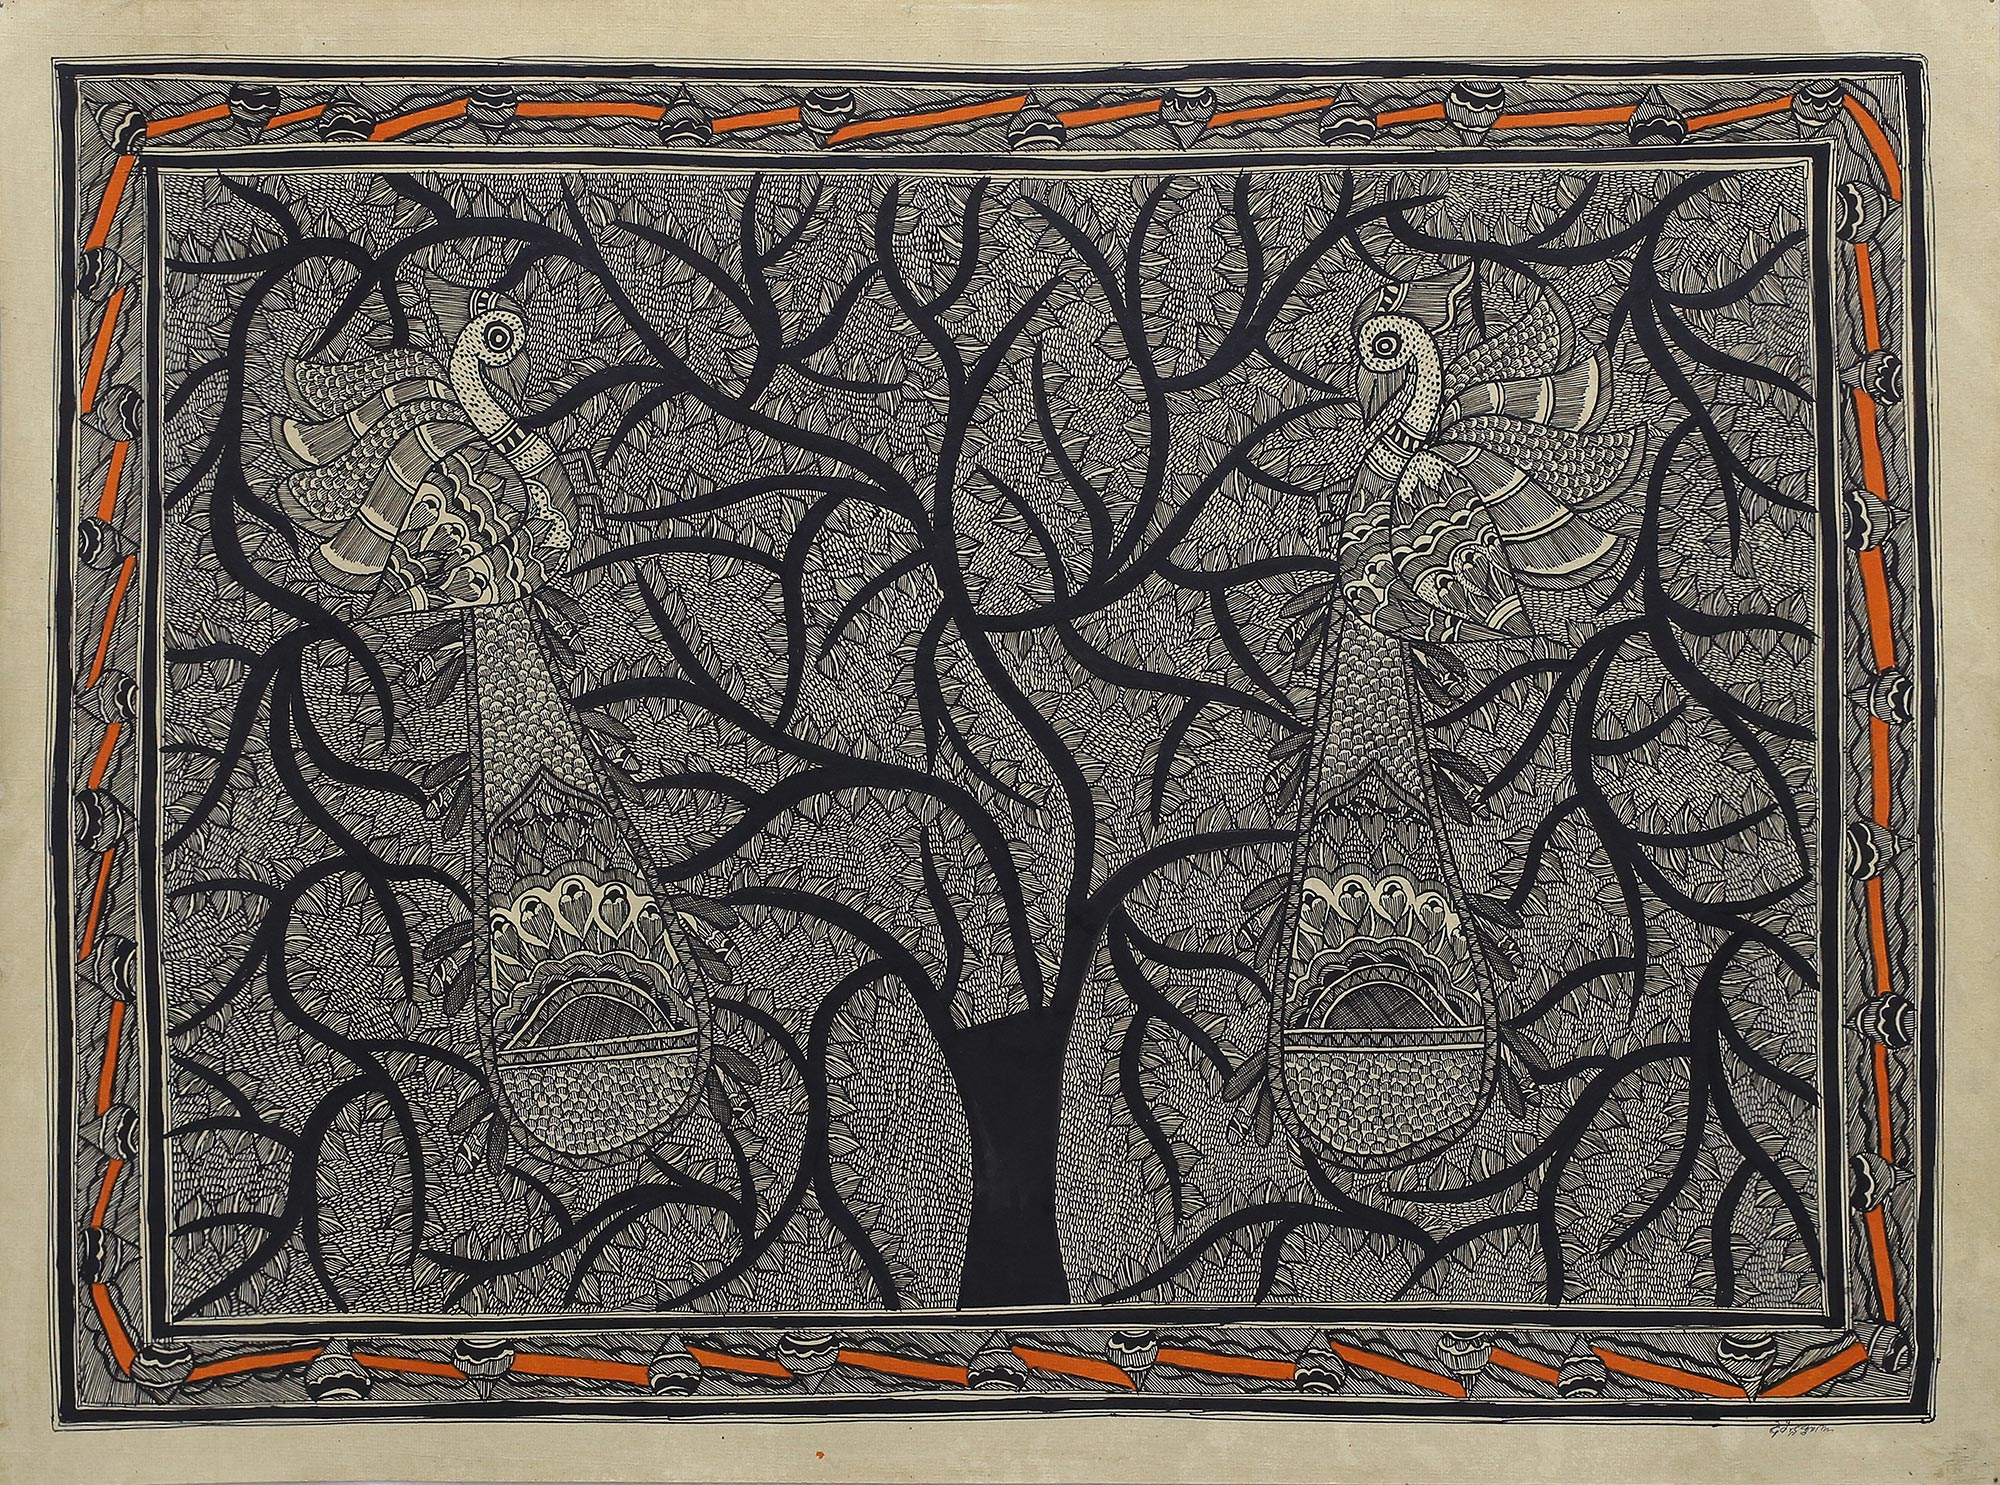 Madhubani Painting of a Tree with Birds in Black and White, 'Peacocks In Love'